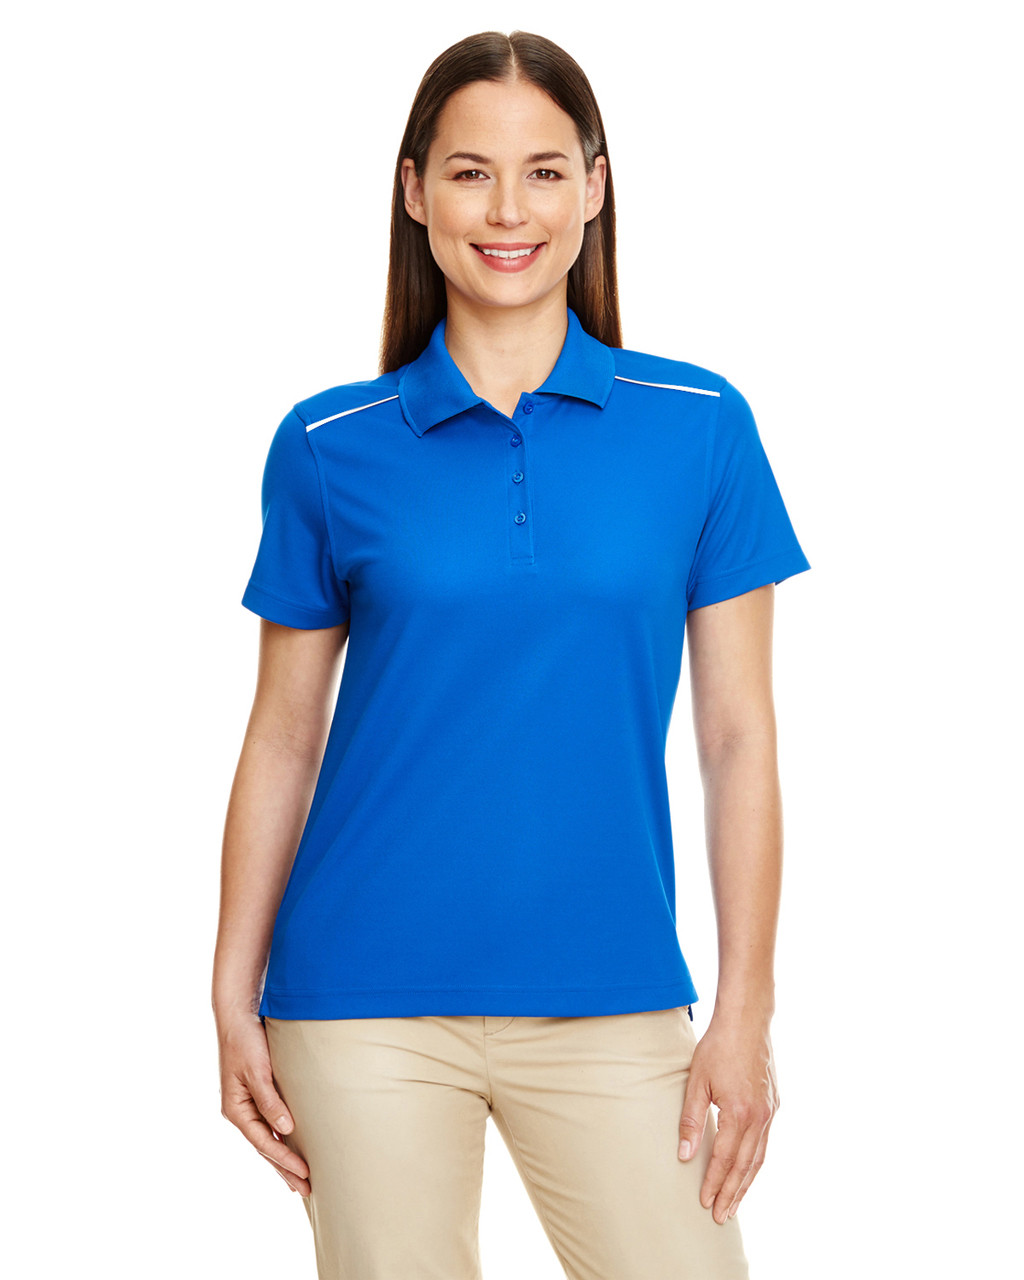 True Royal - 78181R Ash City - Core 365 Ladies' Radiant Performance Piqué Polo Shirt with Reflective Piping | Blankclothing.ca